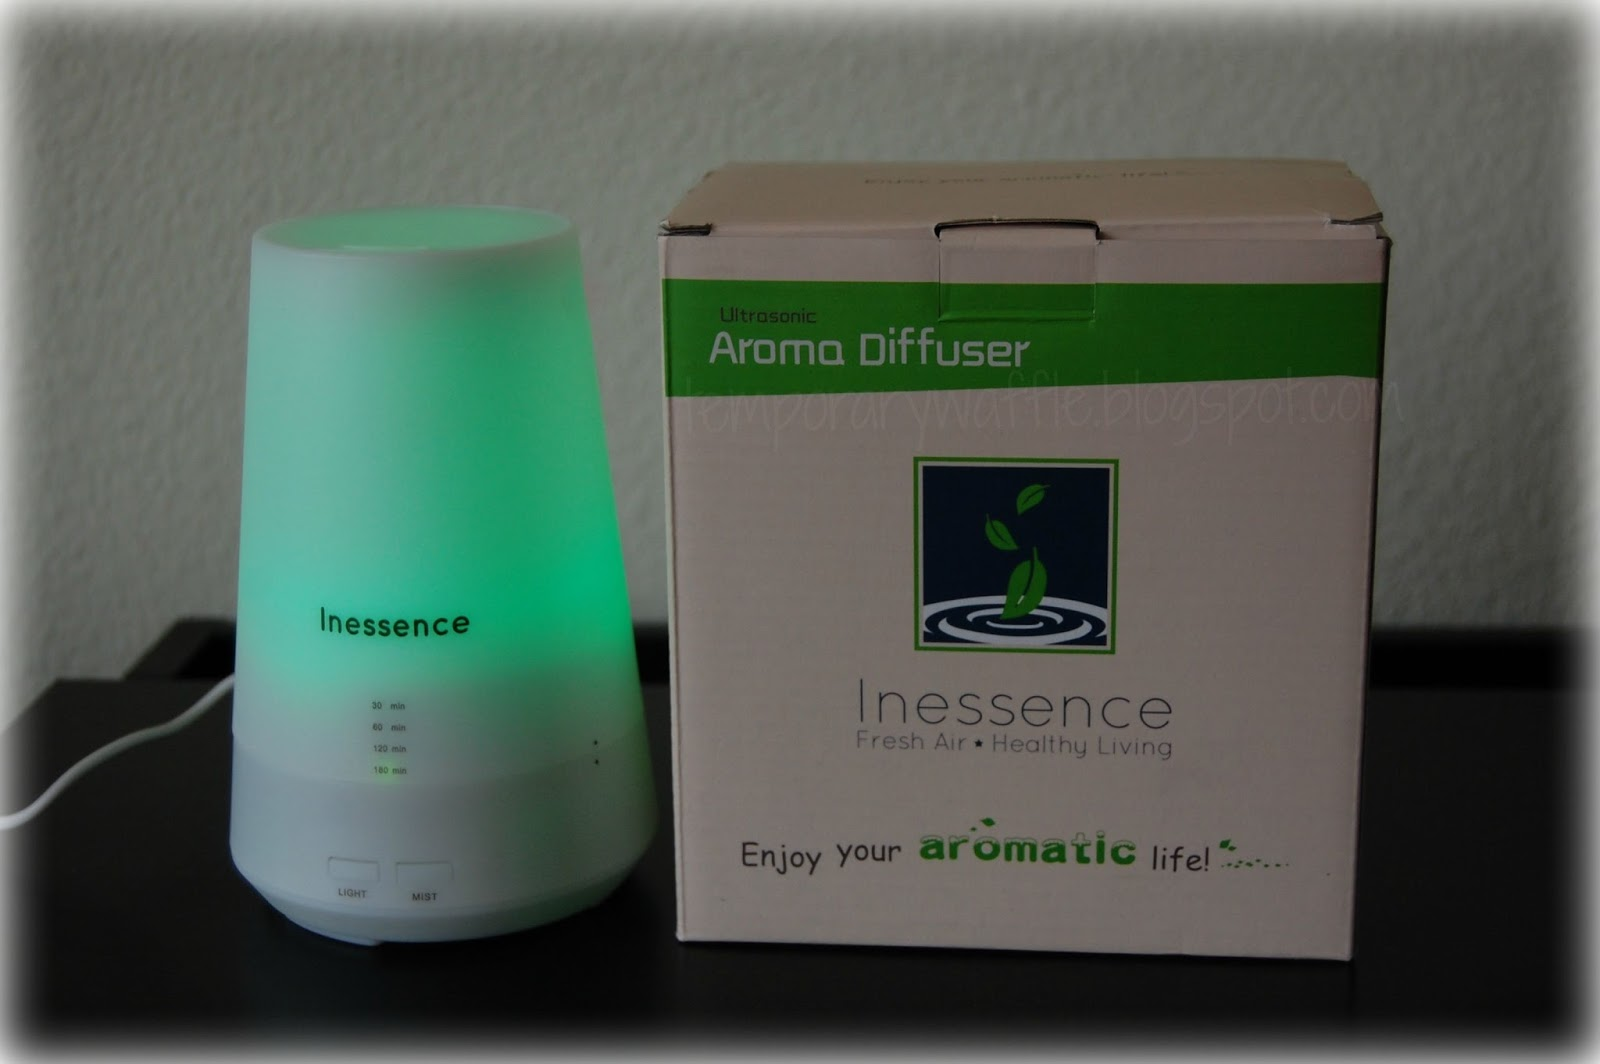 by diffusing oils in the inessence ultrasonic essential oil diffuser #2E936C